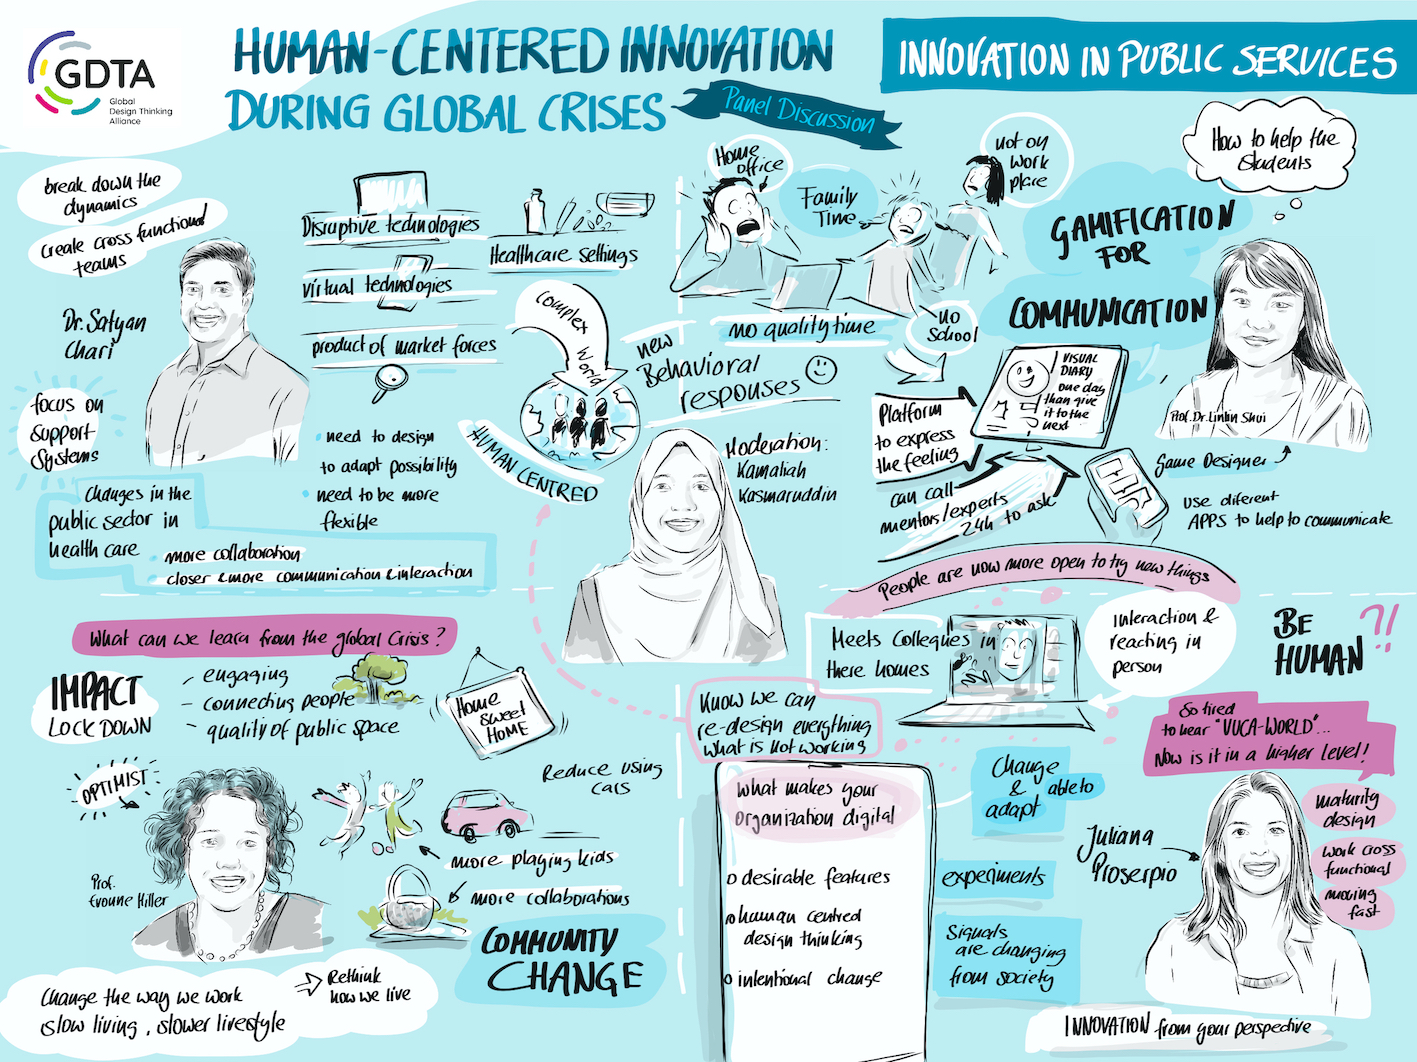 Human-Centered Innovation During Global Crises